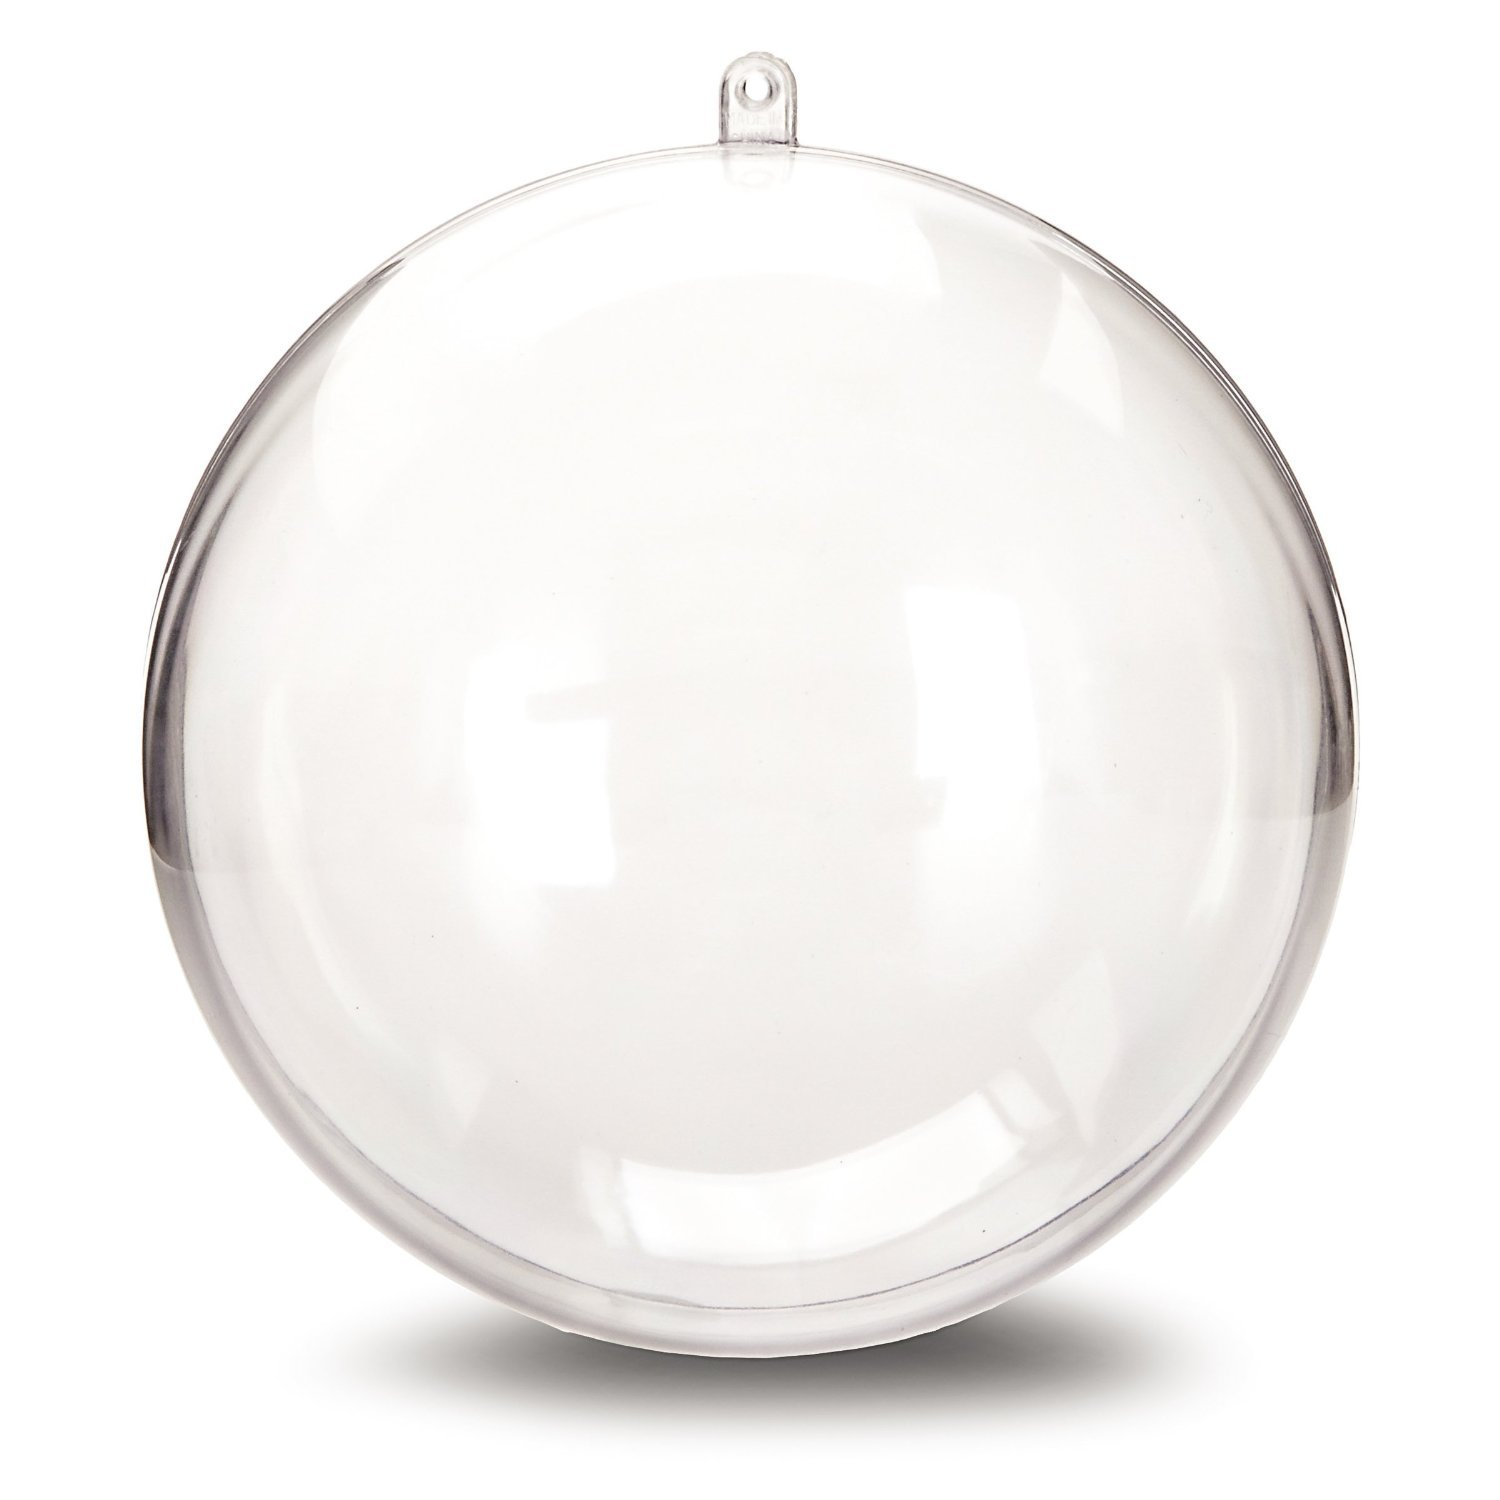 Darice 1105-89 Plastic Ball Ornament, 140mm, Clear - Pack of 12